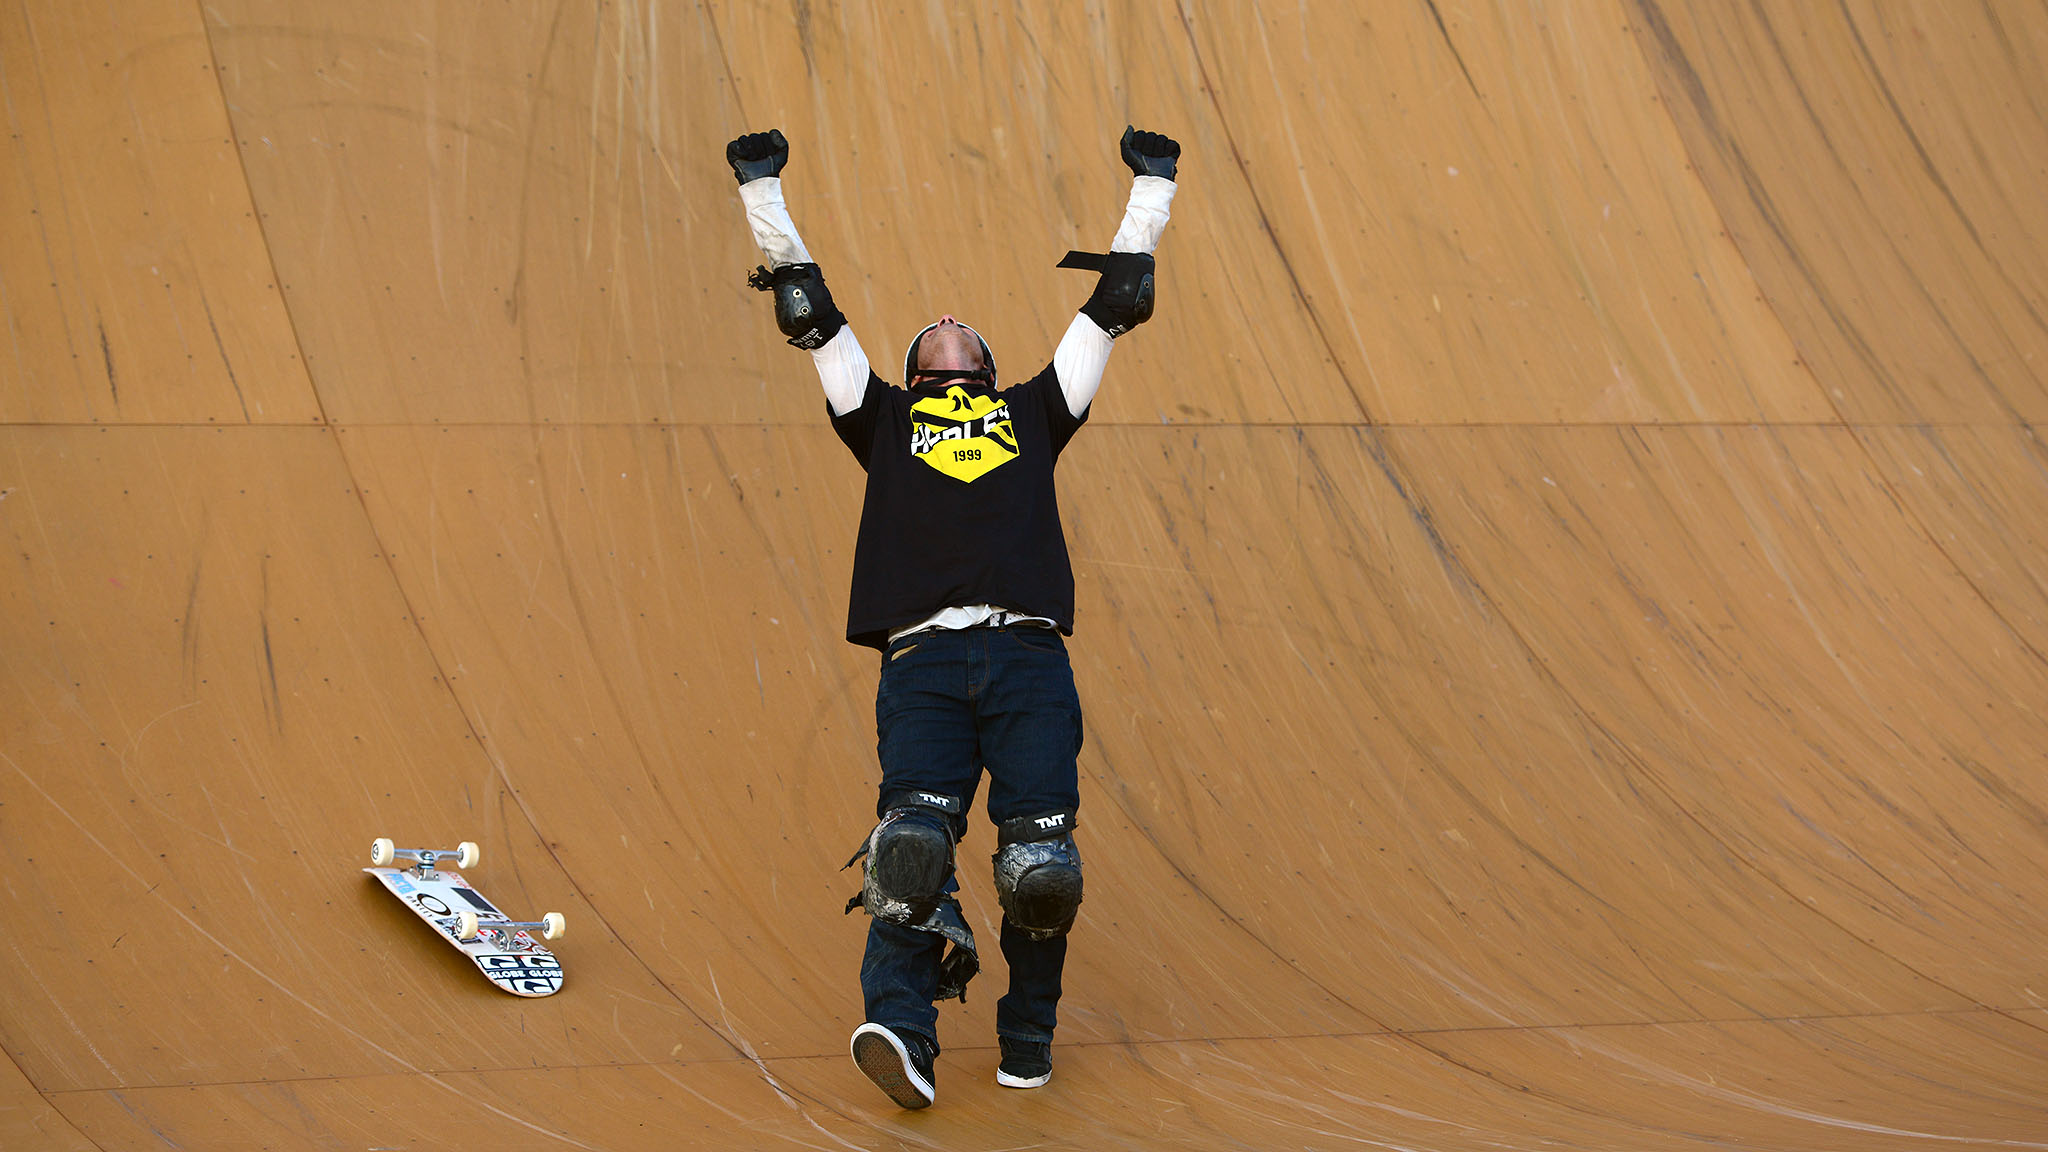 Bob Burnquist now owns 25 X Games medals, more than any other athlete in history.